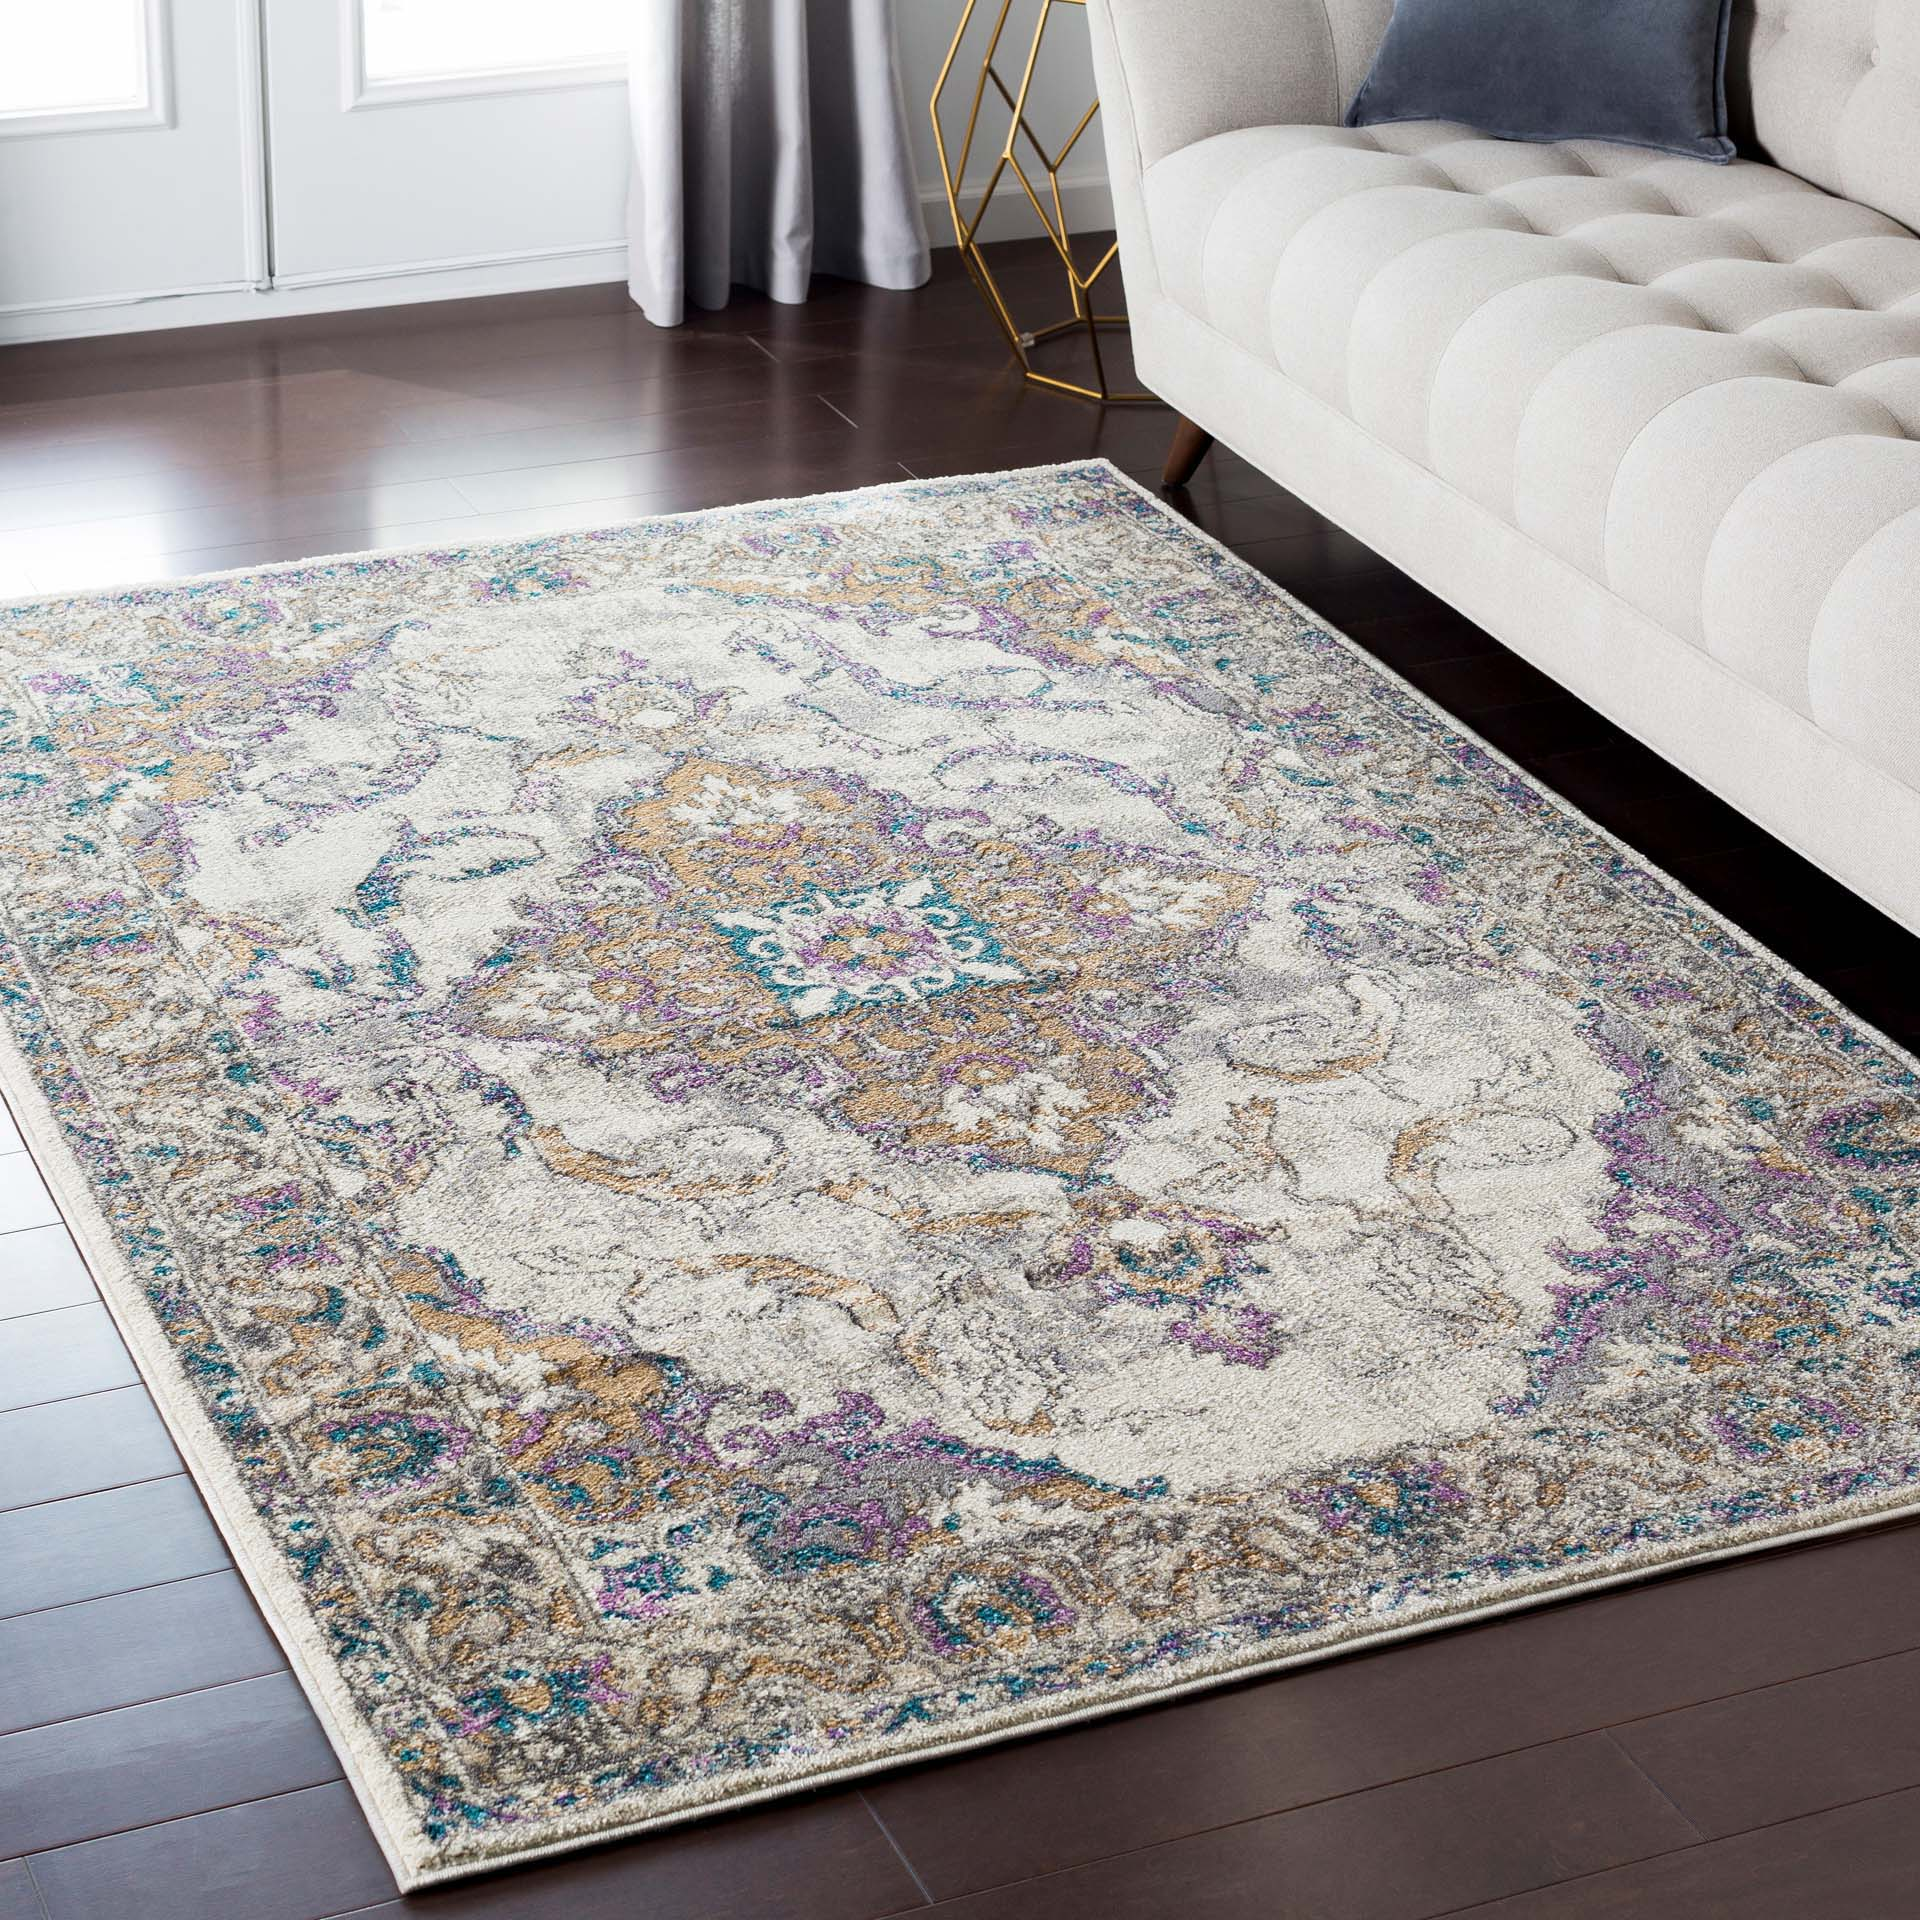 Classic ivory Turkish area rug with gray, purple and aqua ribbon and floral pattern in living room